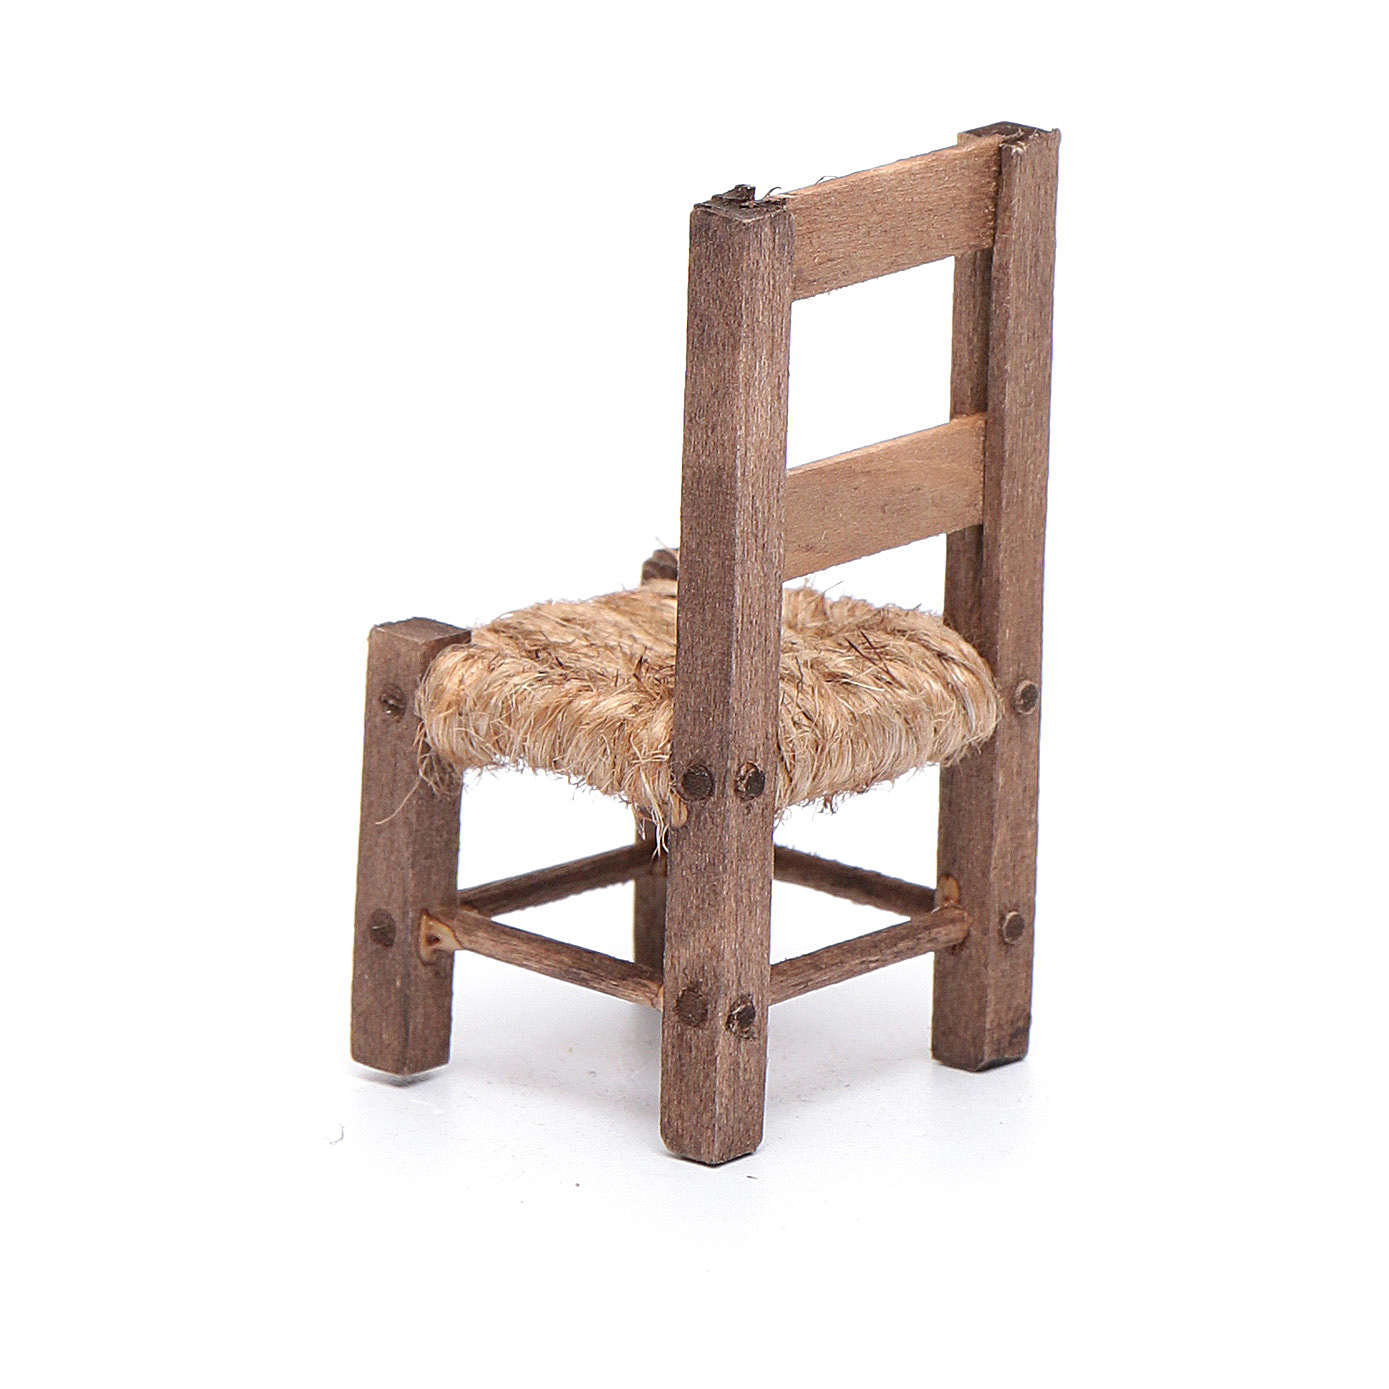 Wooden chair and rope 5 cm for Neapolitan nativity scene 4